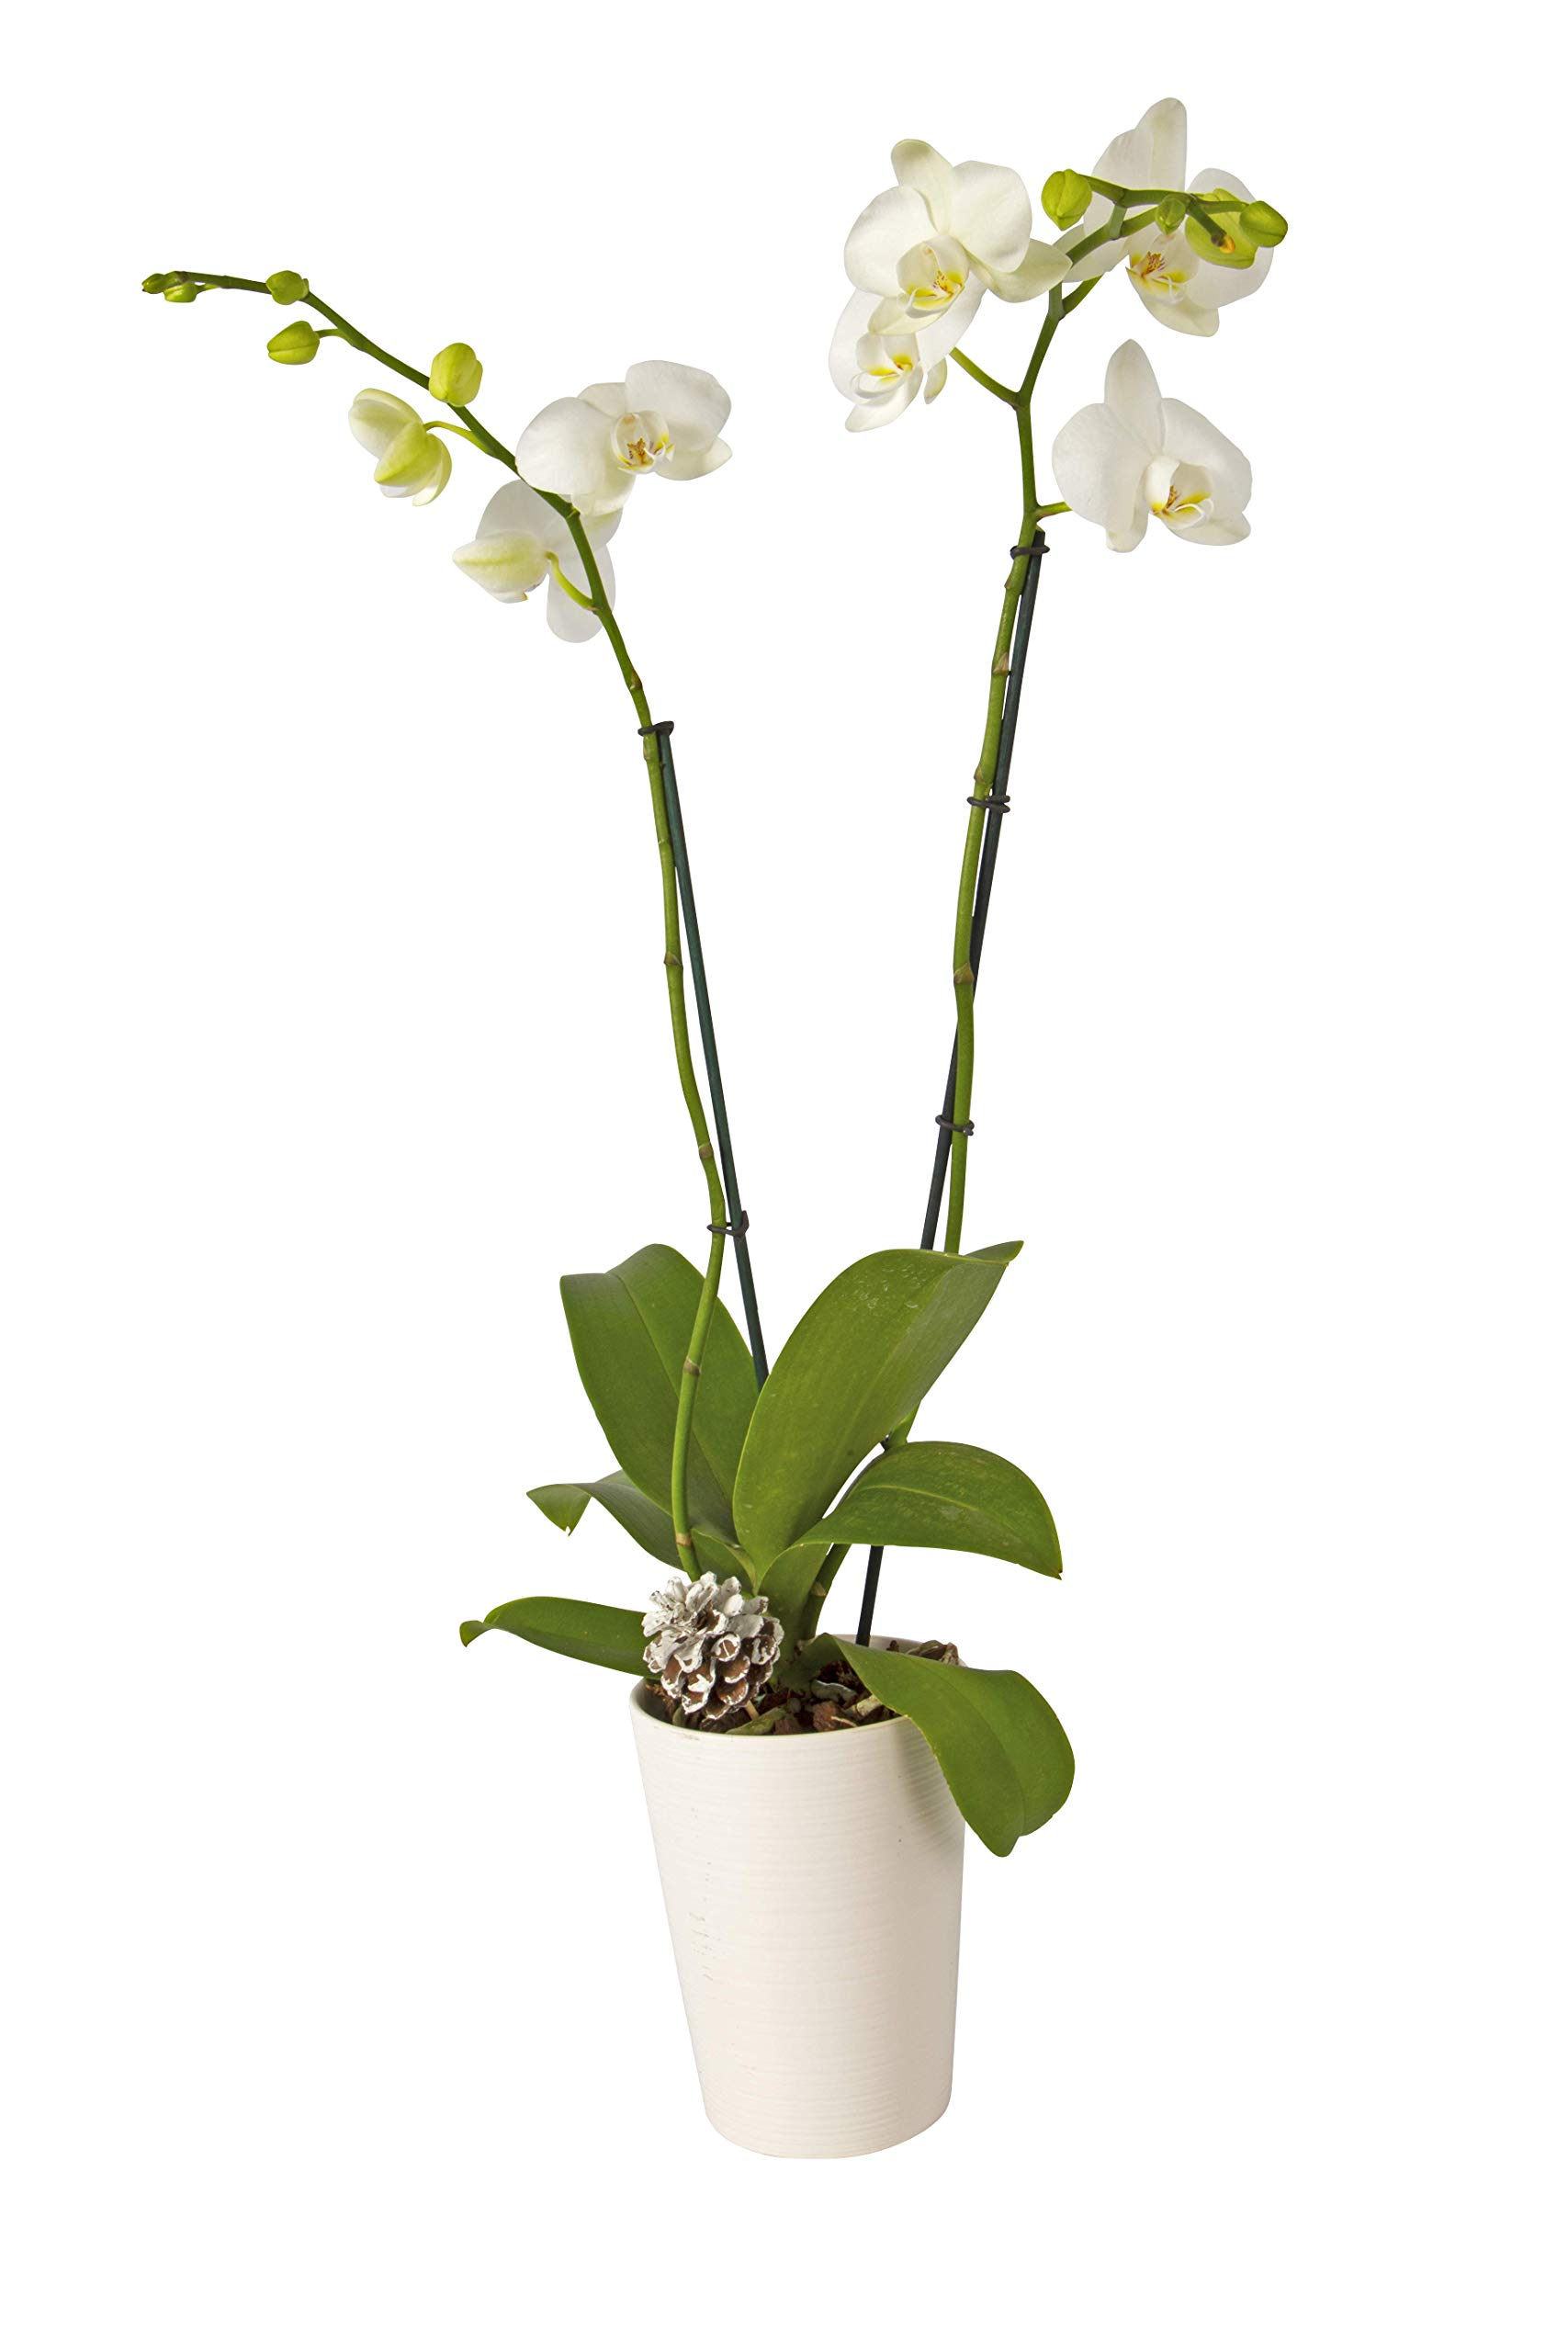 Color Orchids Live Holiday Orchid Blooming Double Stem Phalaenopsis Plant in Ceramic Pot, 20''-24'' Tall, White Blooms